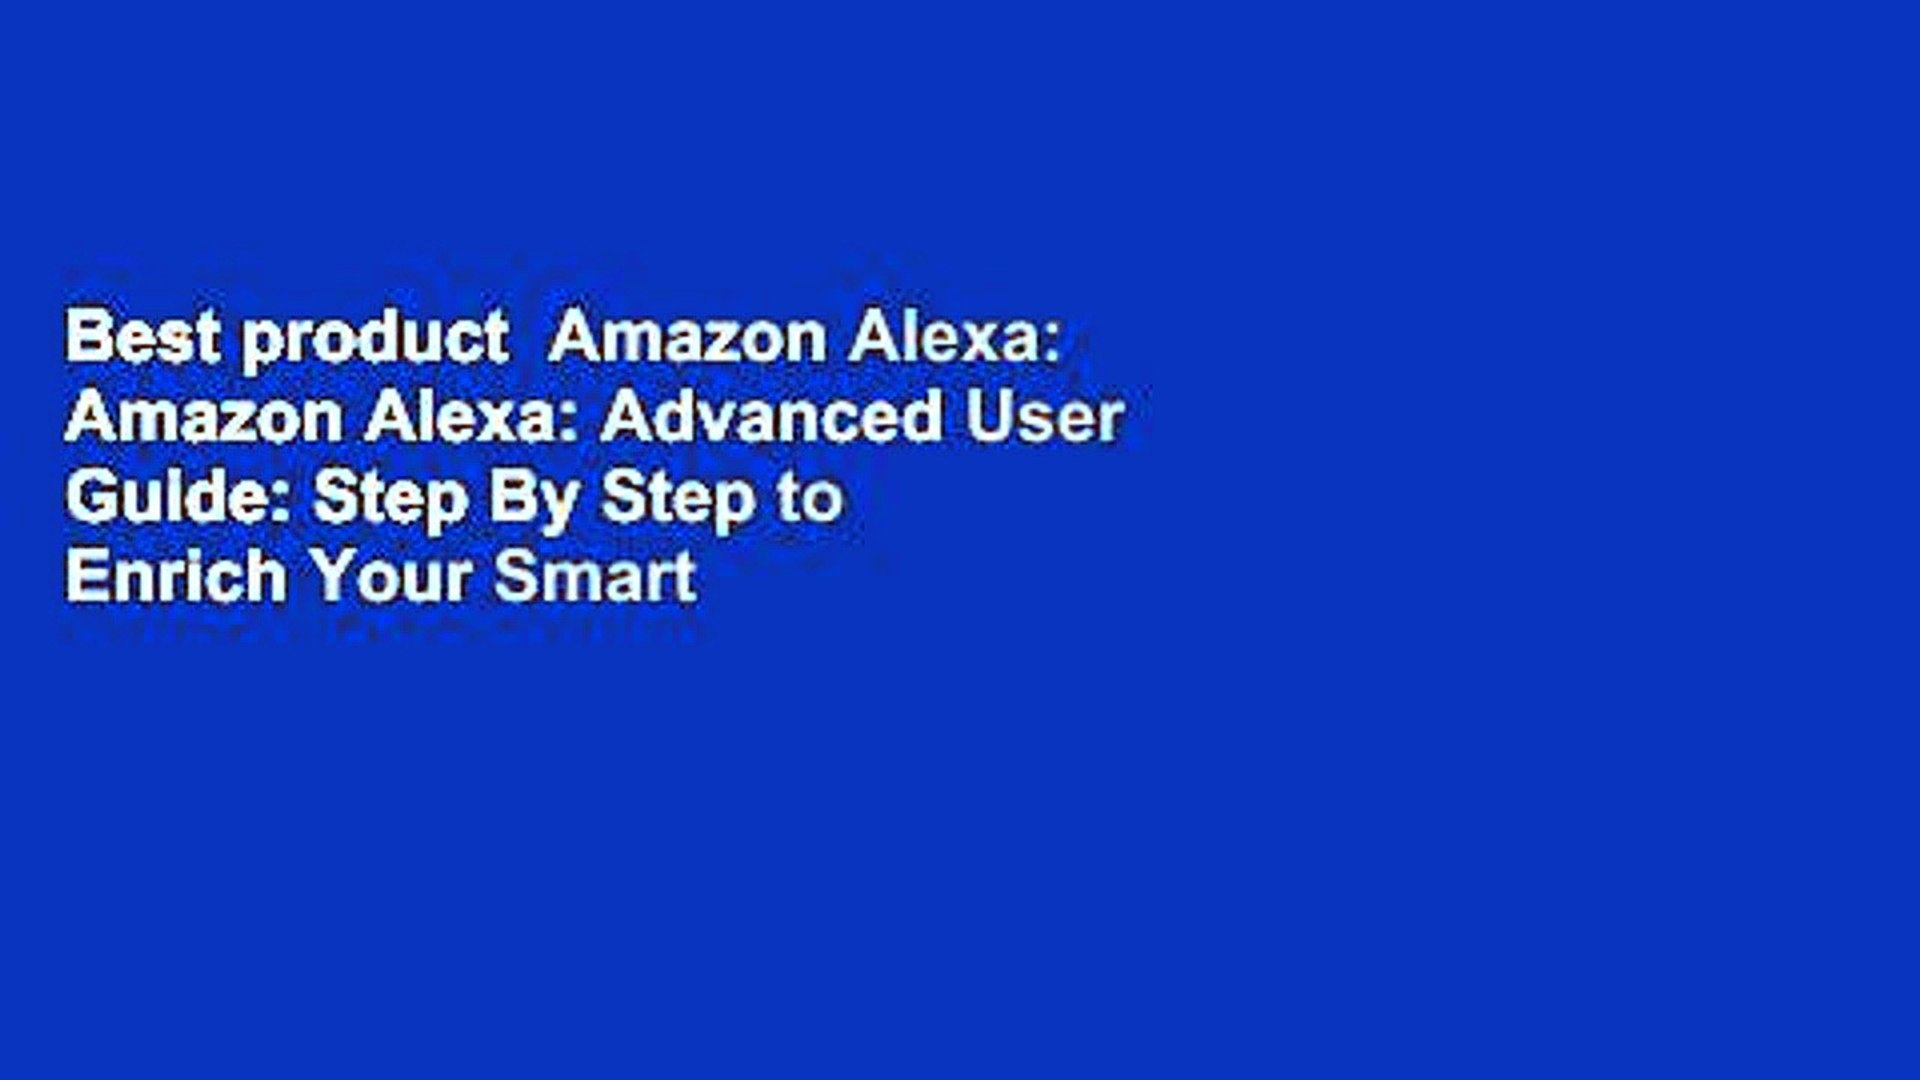 Best product  Amazon Alexa: Amazon Alexa: Advanced User Guide: Step By Step to Enrich Your Smart